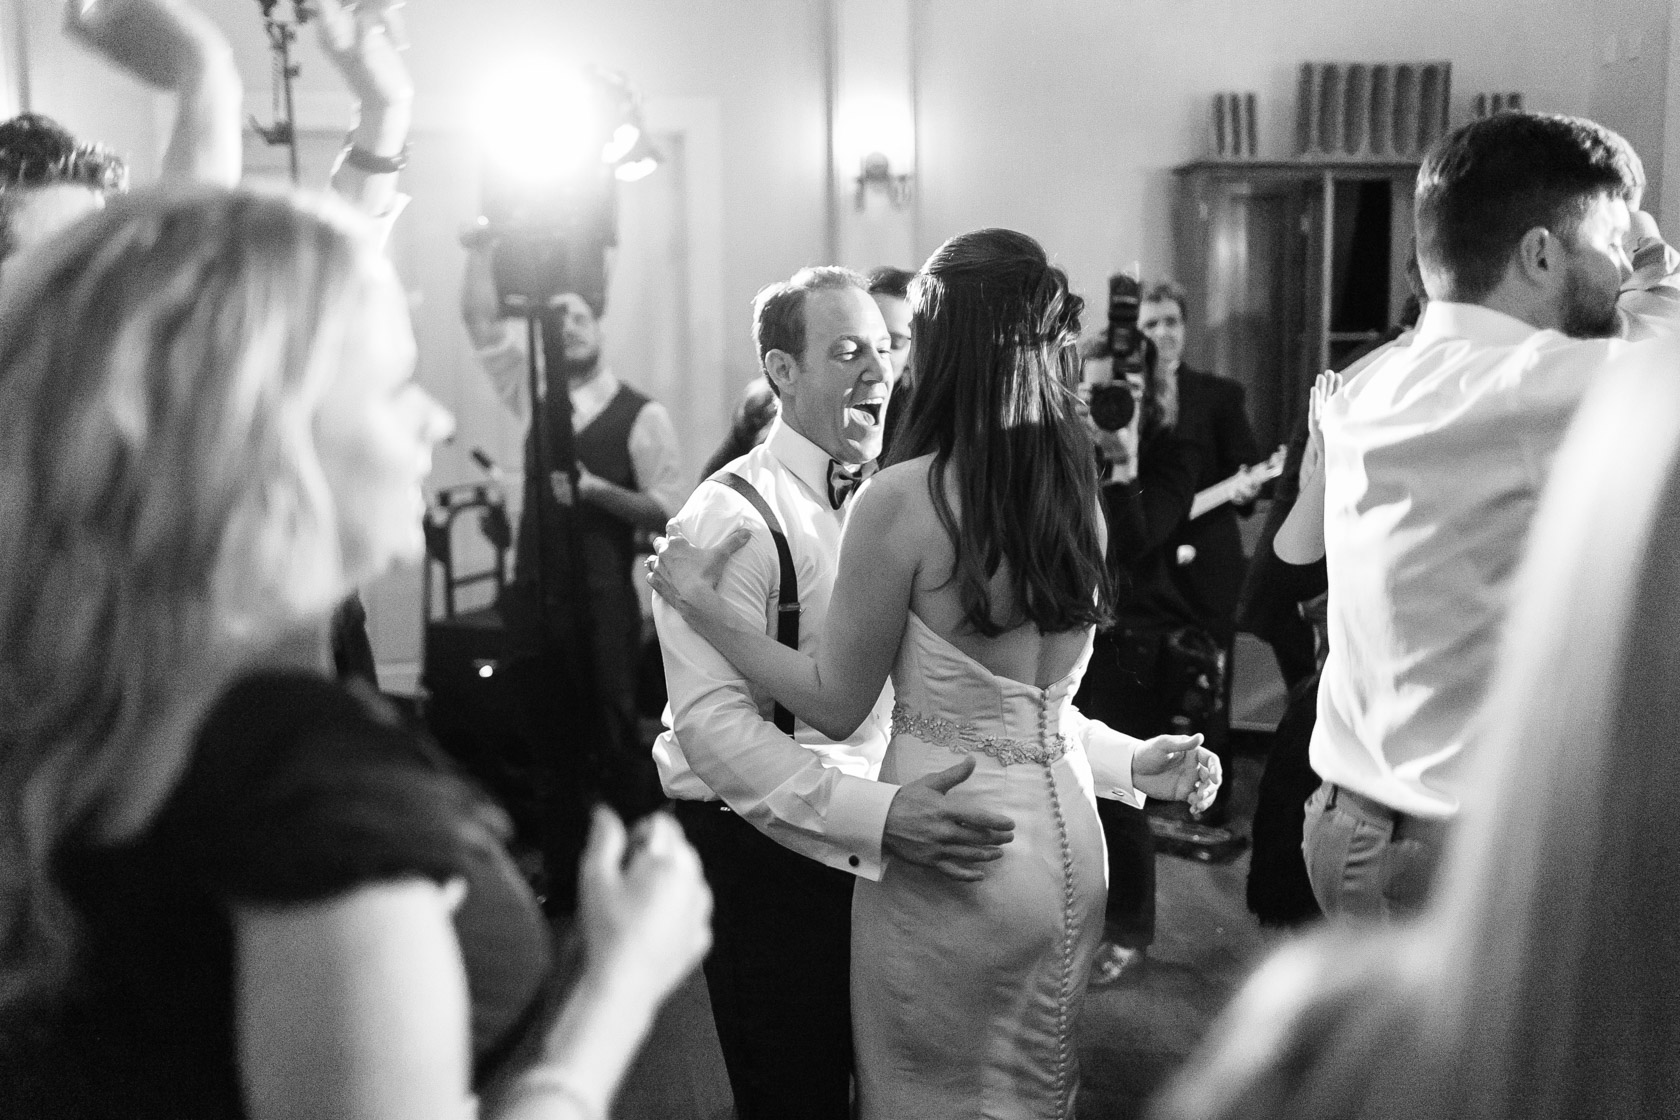 audubon clubhouse bride and groom dancing the night away